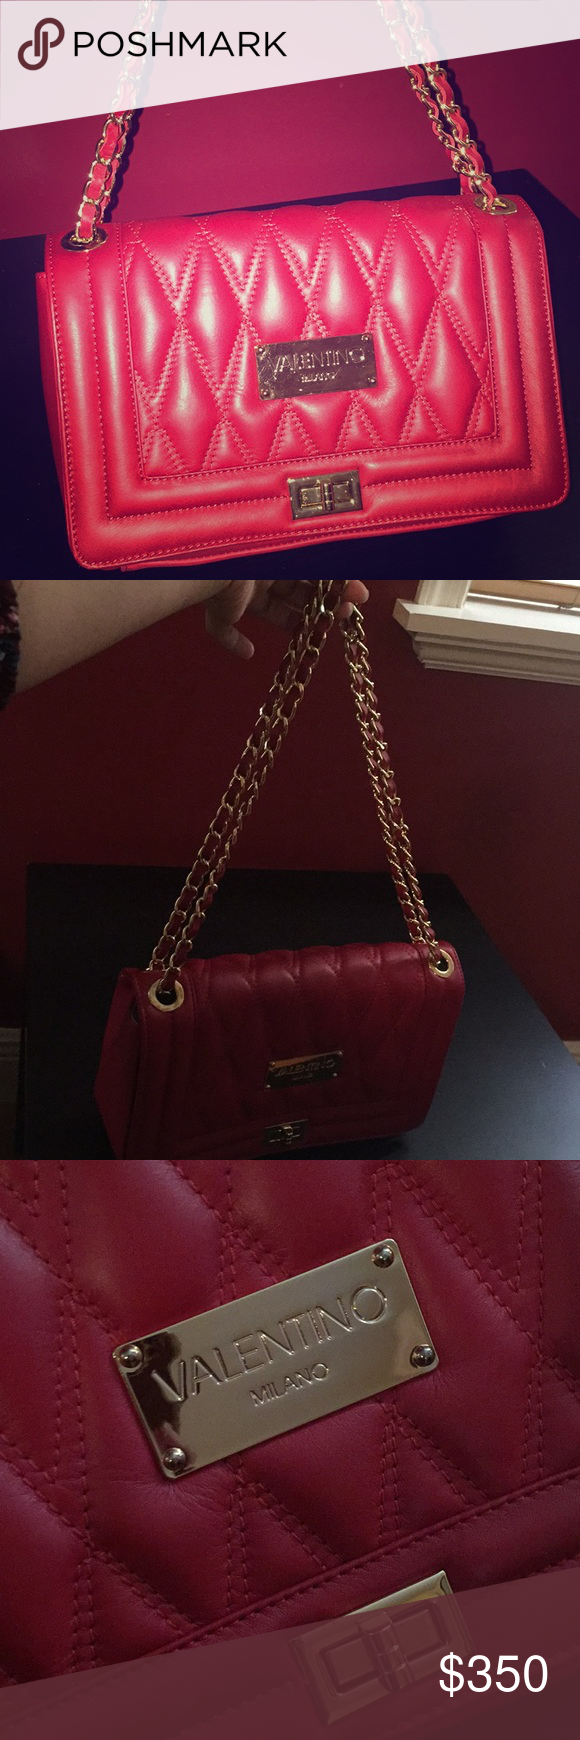 4dfcc0aa86 Valentino Milano red handbag Beautiful red Valentino Milano handbag. Can be  used as a crossbody or shoulder bag. Tags included Valentino Bags Shoulder  Bags